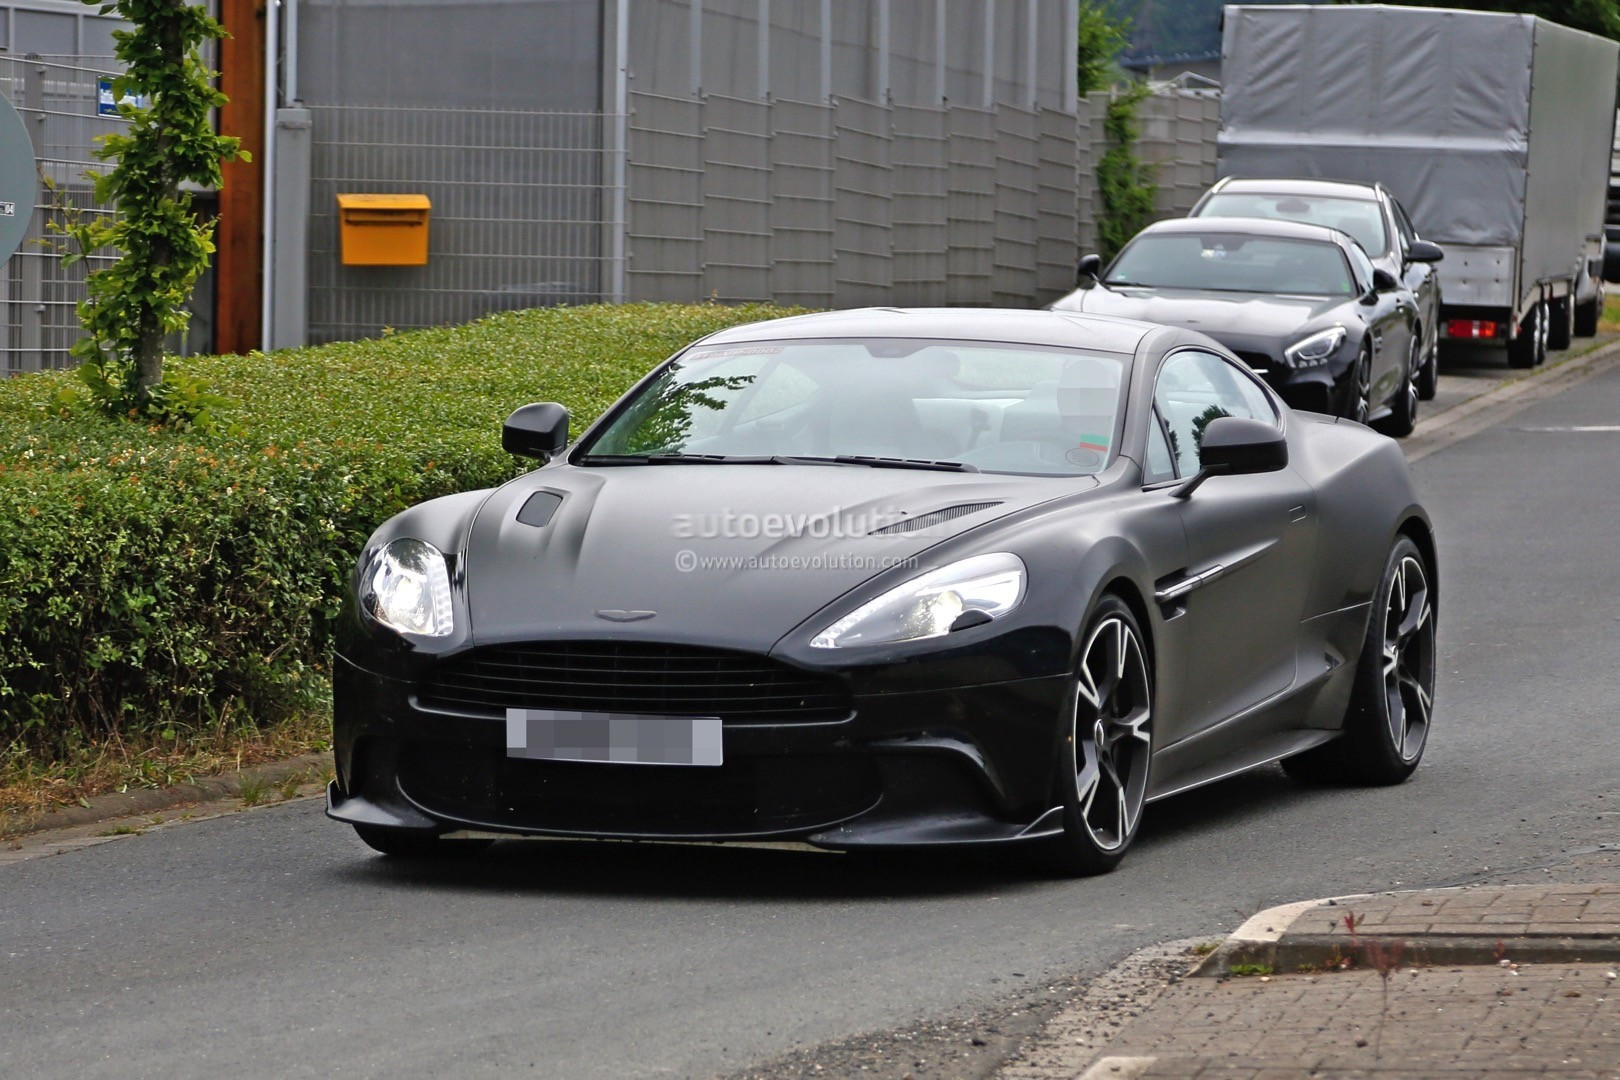 2018 aston martin vanquish s spied for the first time autoevolution. Black Bedroom Furniture Sets. Home Design Ideas